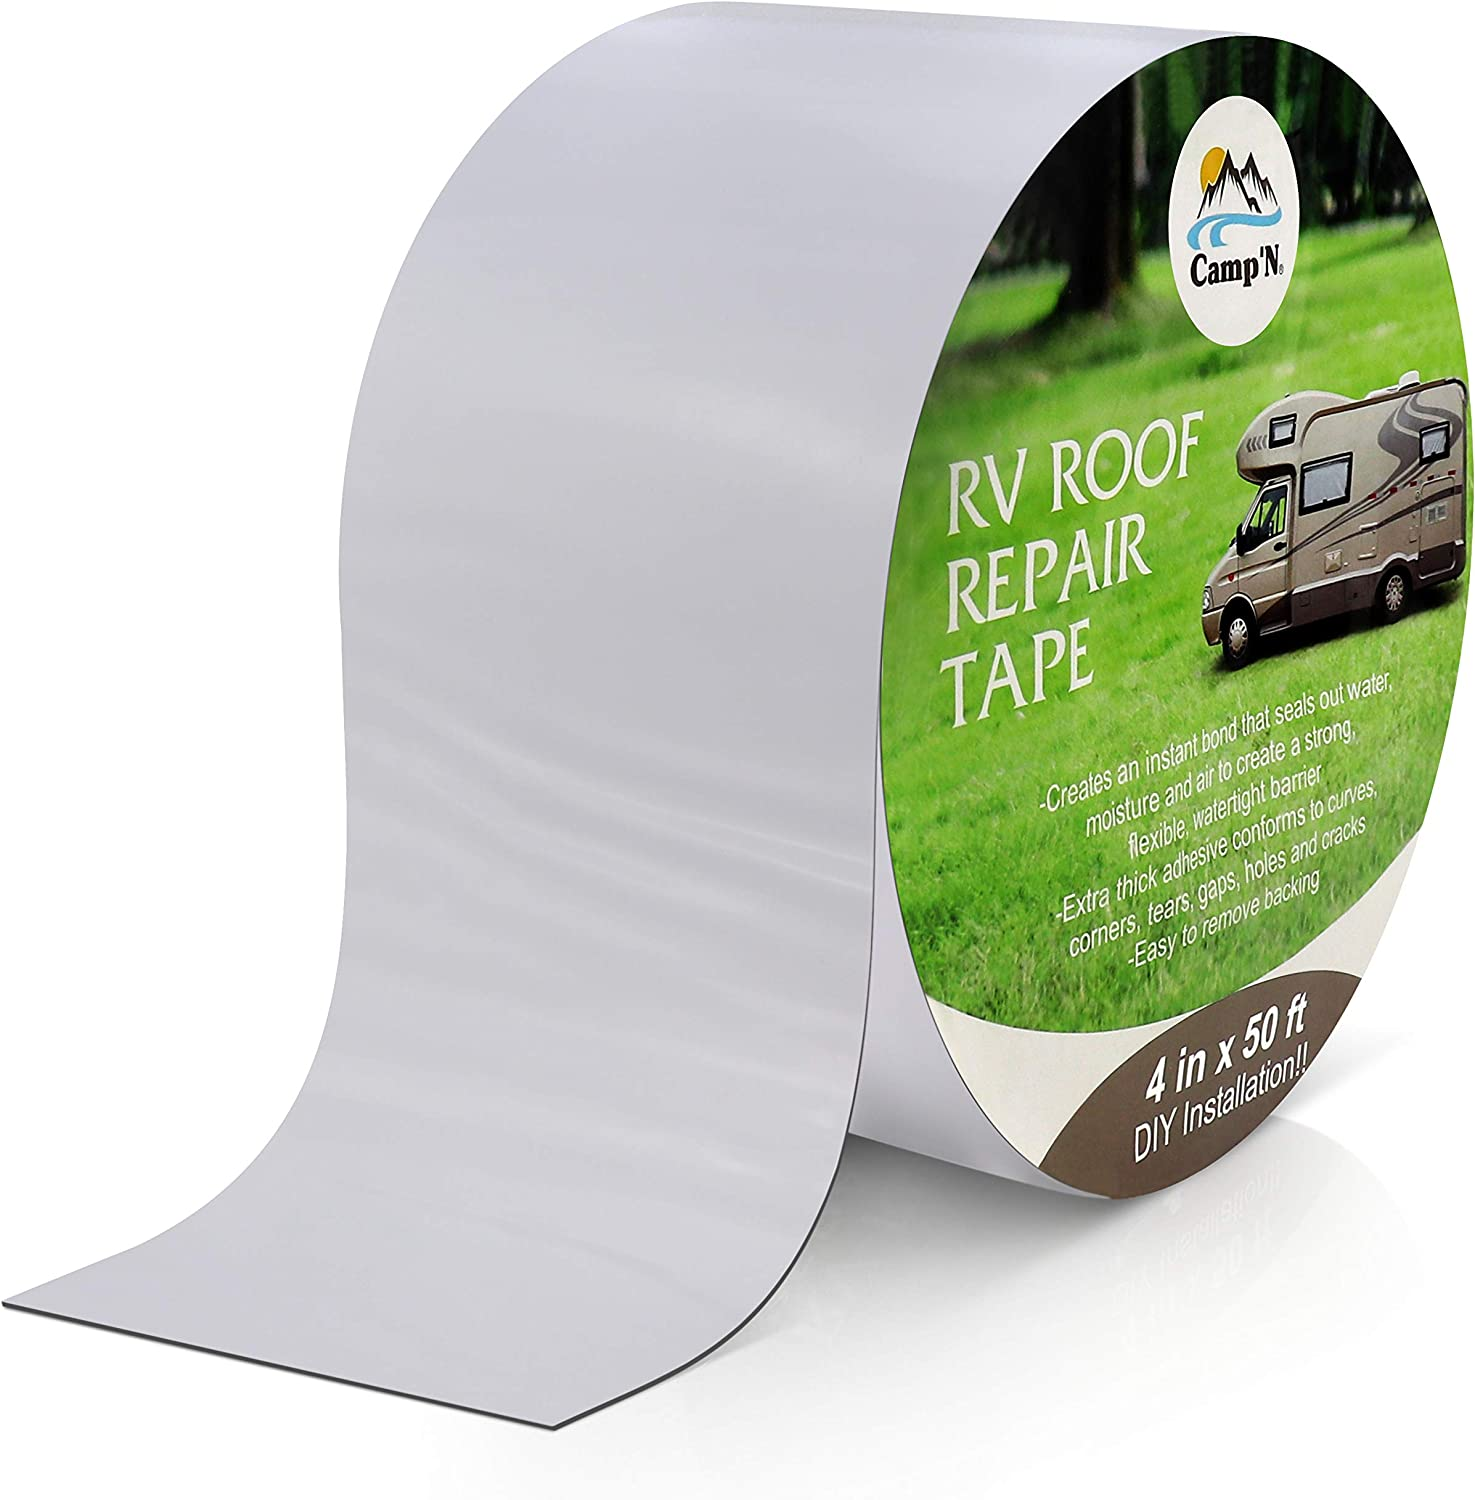 """LLPT Sealant RV Repair Butyl Tape White 2/"""" x 50 Feet Roof Patch RV Rubber Sealing Tape Weatherproof Strong Curling Resistance for Window RV Repair Boat Vent Camper Leaks SV502"""